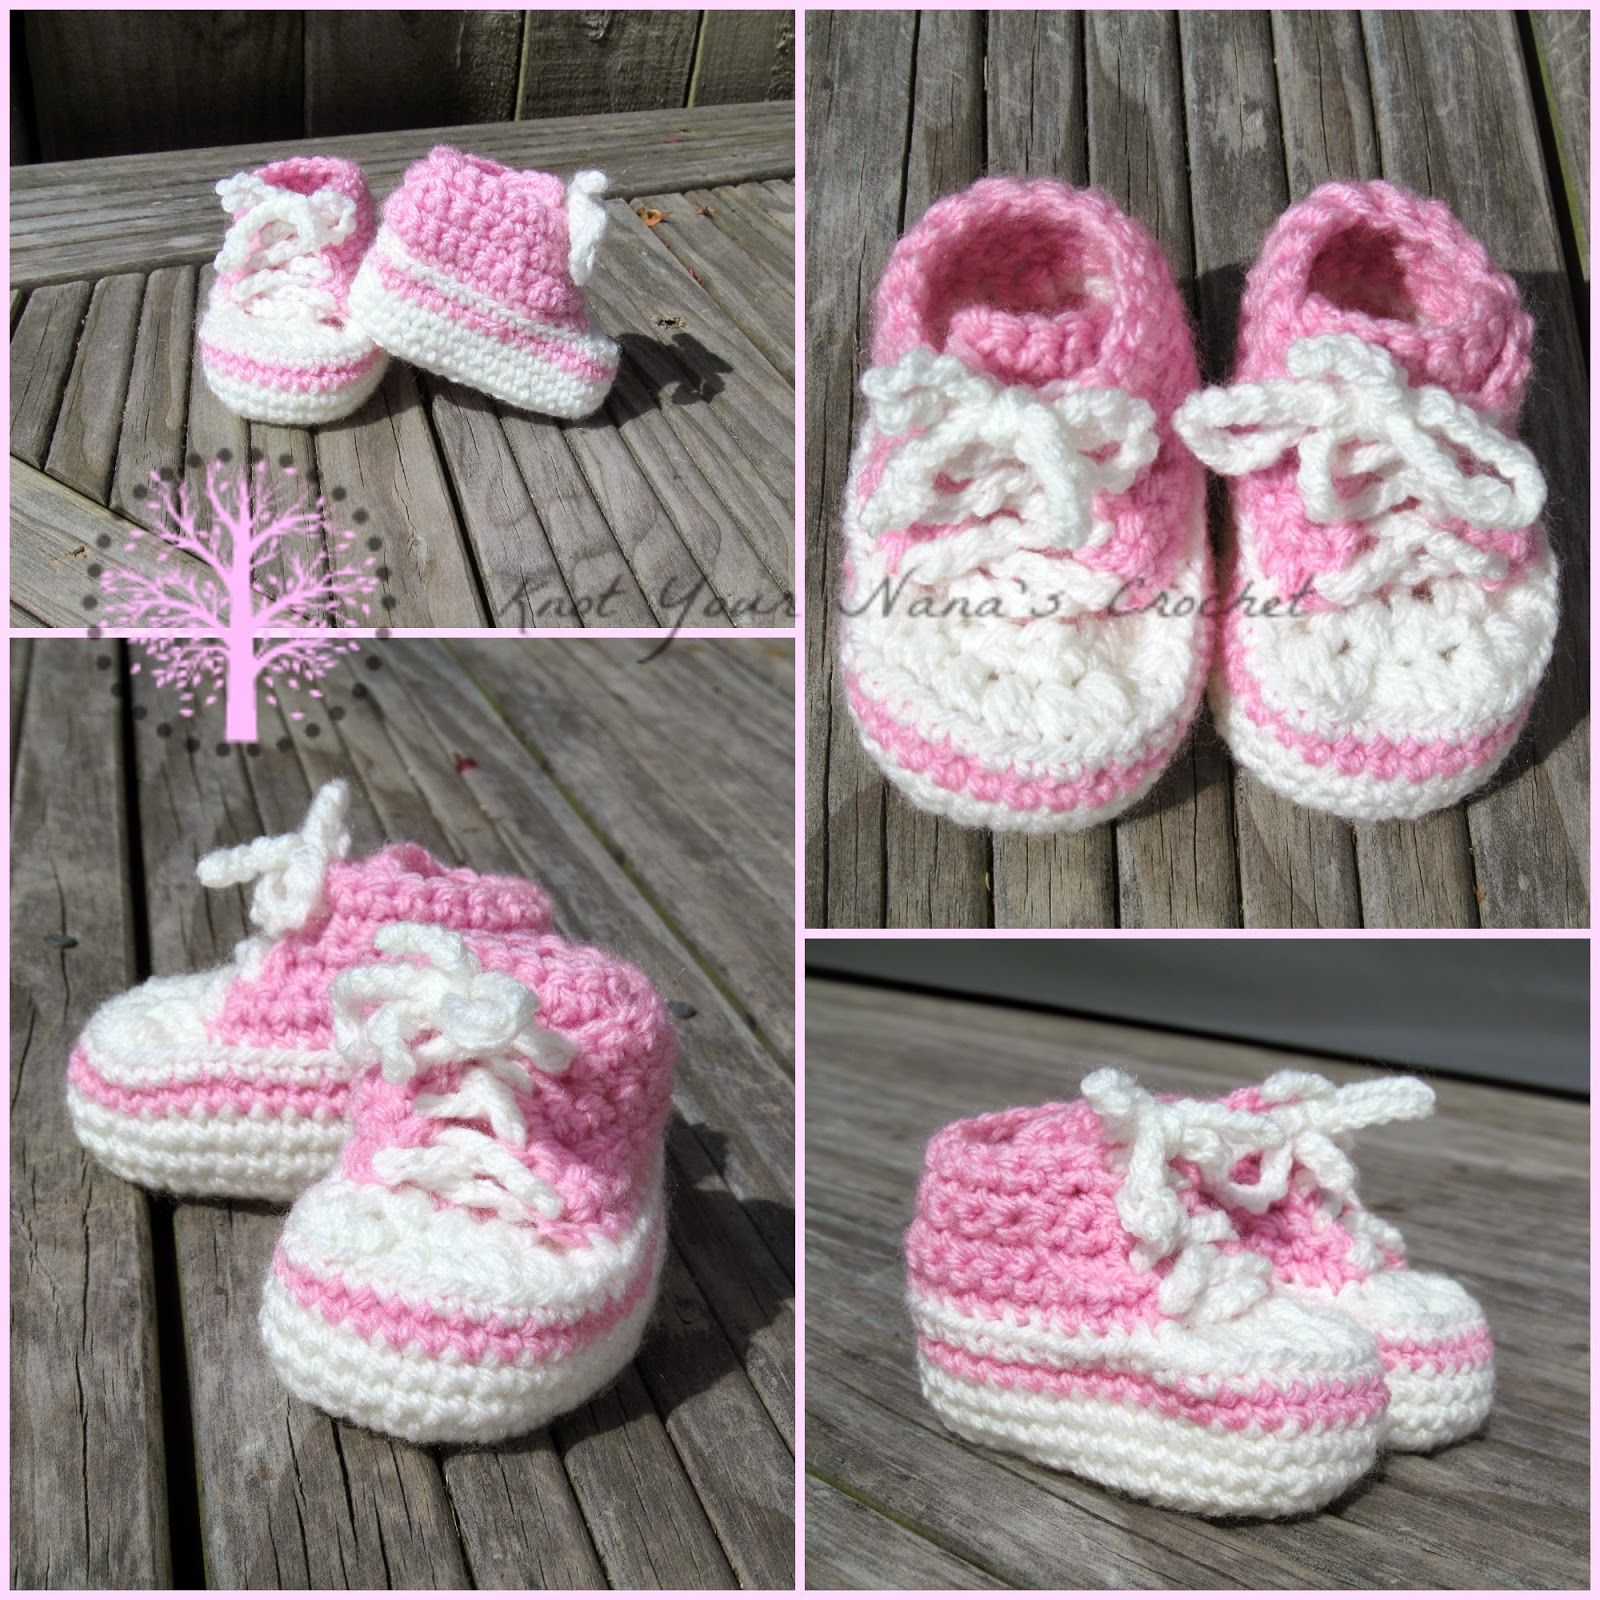 Crochet Converse Newborn High Tops -wonderfuldiy1